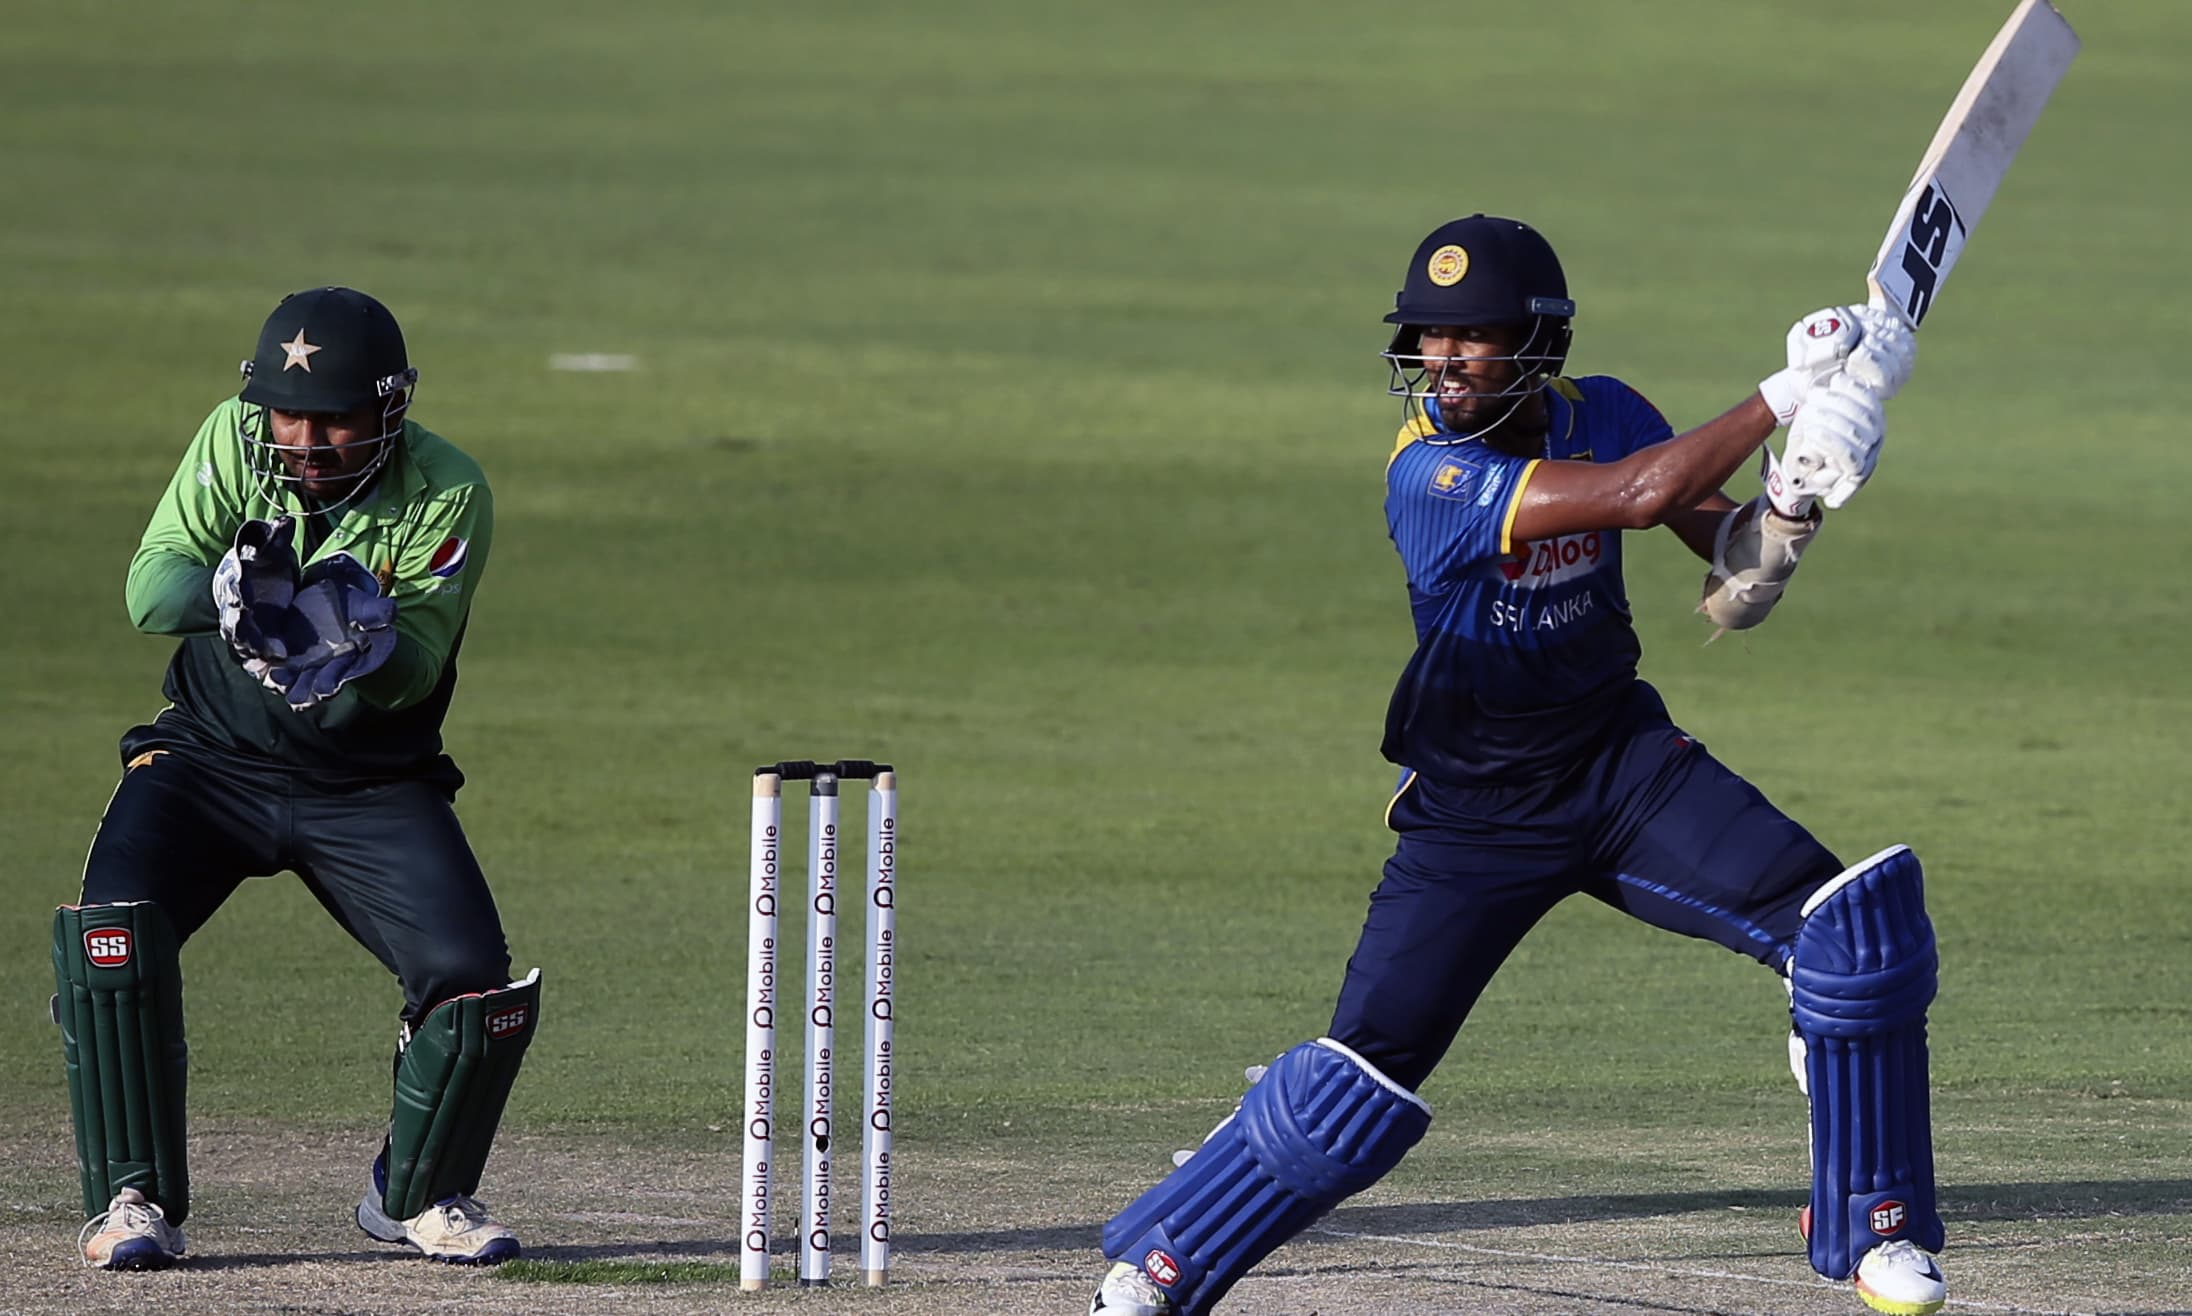 Dinesh Chandimal plays shot during their third ODI cricket match against Pakistan in Abu Dhabi. —AP